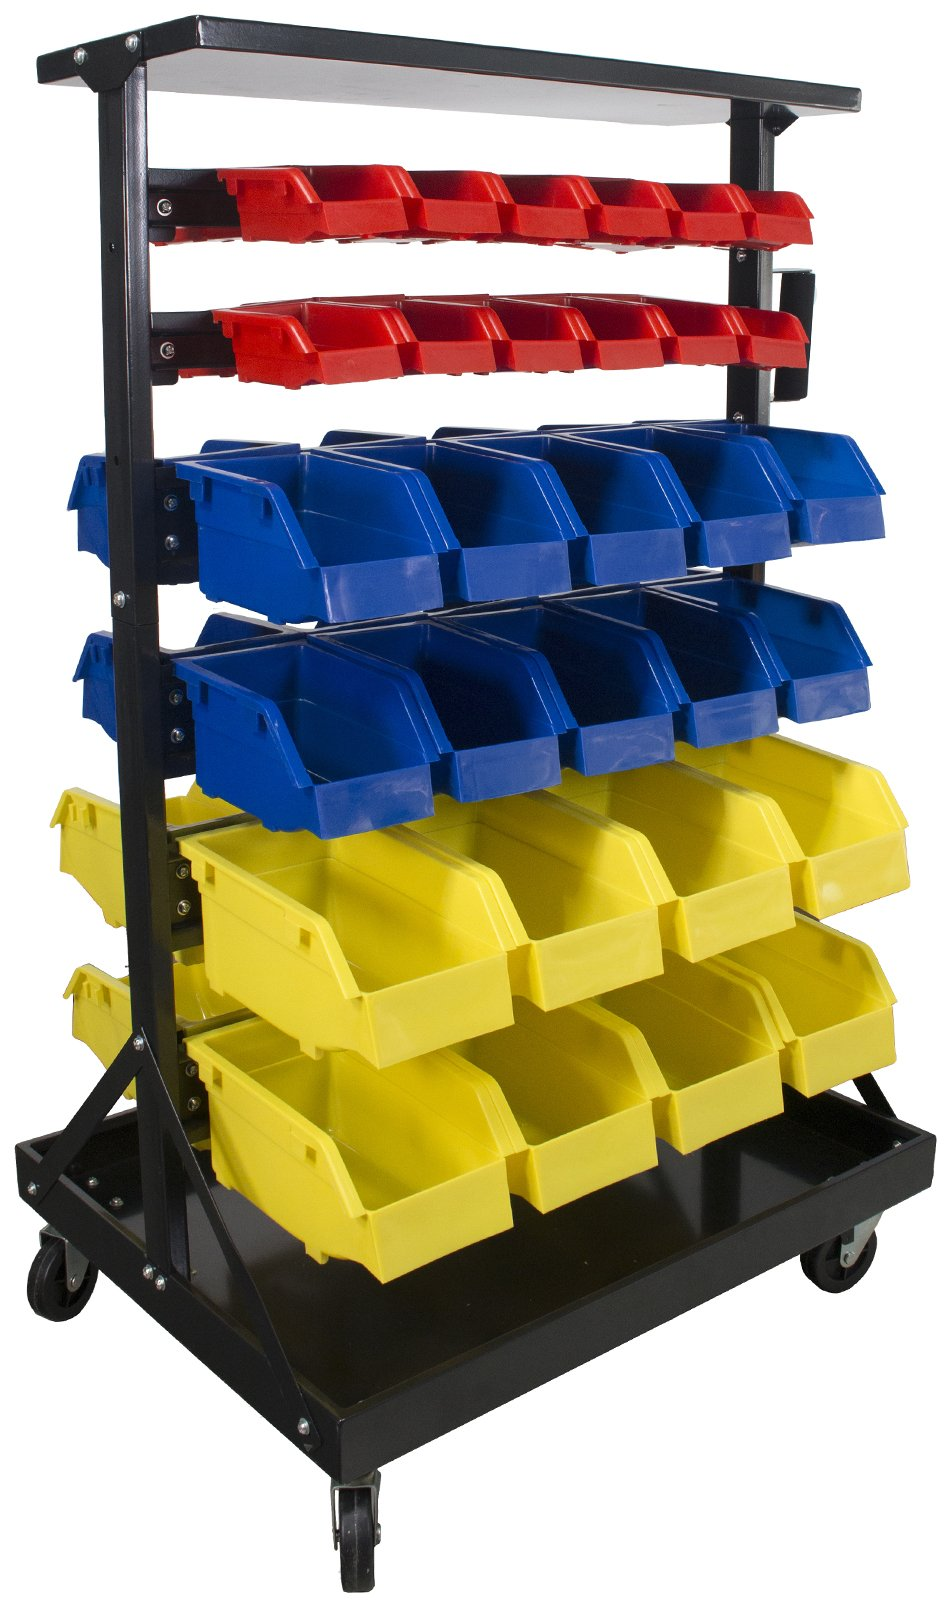 Erie Tools 60 Bin Parts Storage Rack with Locking Wheels for Shop Garage